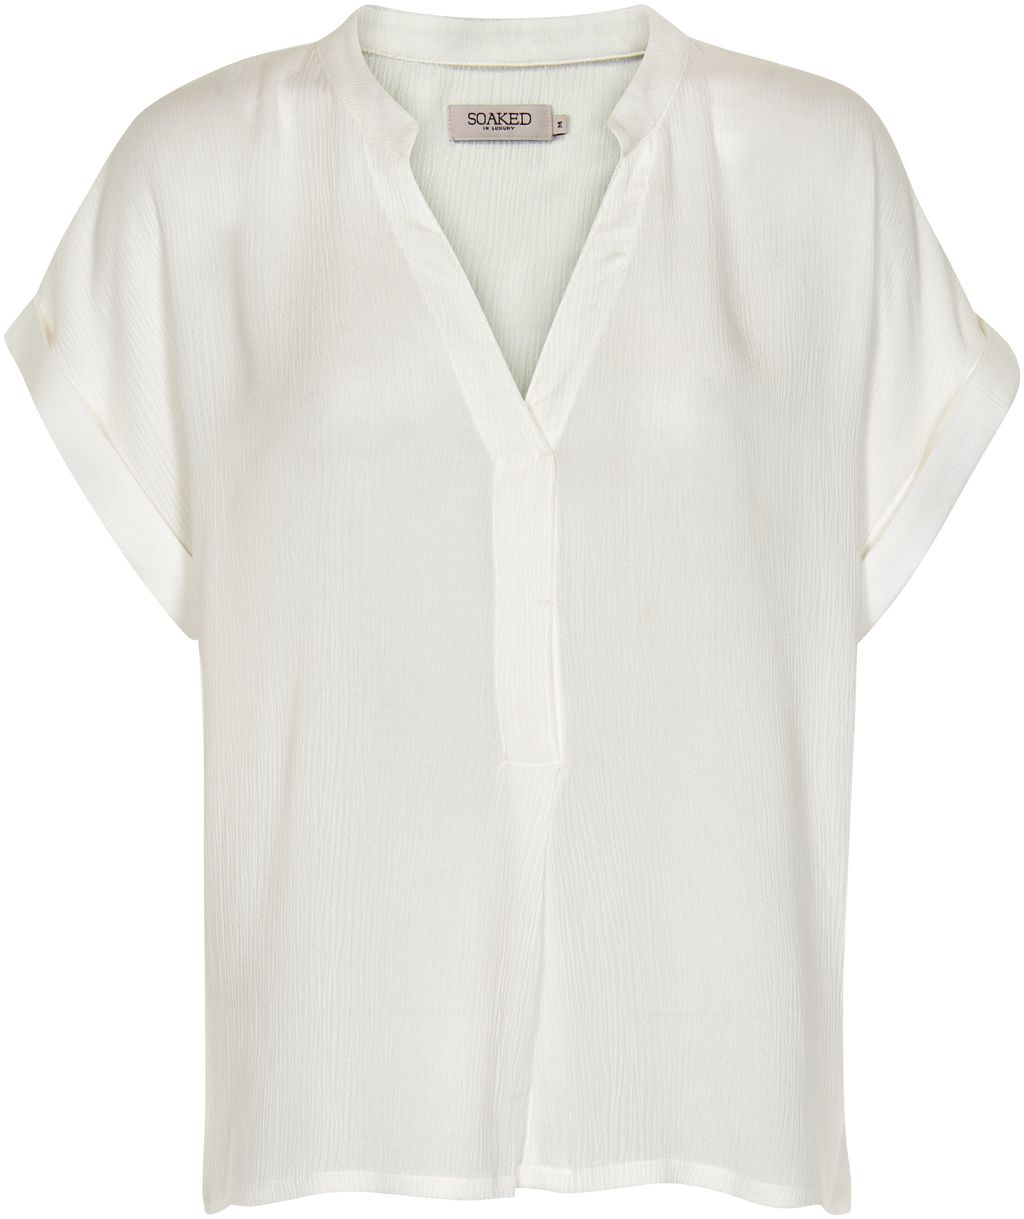 Oversized V Neck Top, White - pattern: plain; predominant colour: white; occasions: casual, creative work; length: standard; style: top; neckline: collarstand & mandarin with v-neck; fibres: viscose/rayon - 100%; fit: body skimming; sleeve length: short sleeve; sleeve style: standard; pattern type: fabric; texture group: other - light to midweight; season: s/s 2016; wardrobe: basic